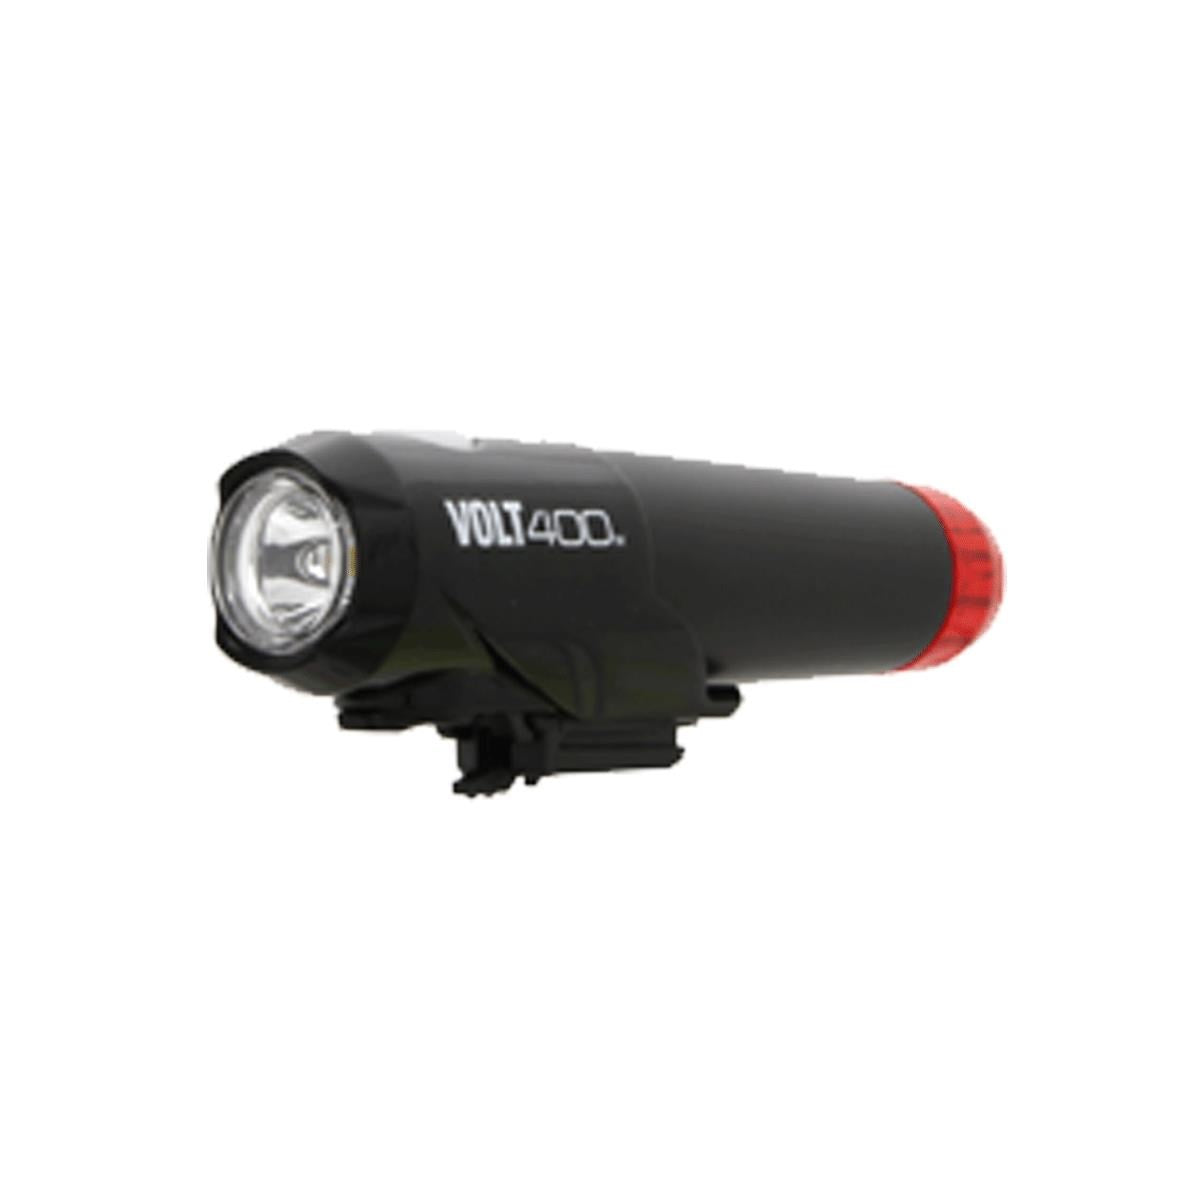 CATEYE VOLT 400 DUPLEX FRONT/REAR HELMET USB RECHARGEABLE LIGHT - ORBIT Cycling